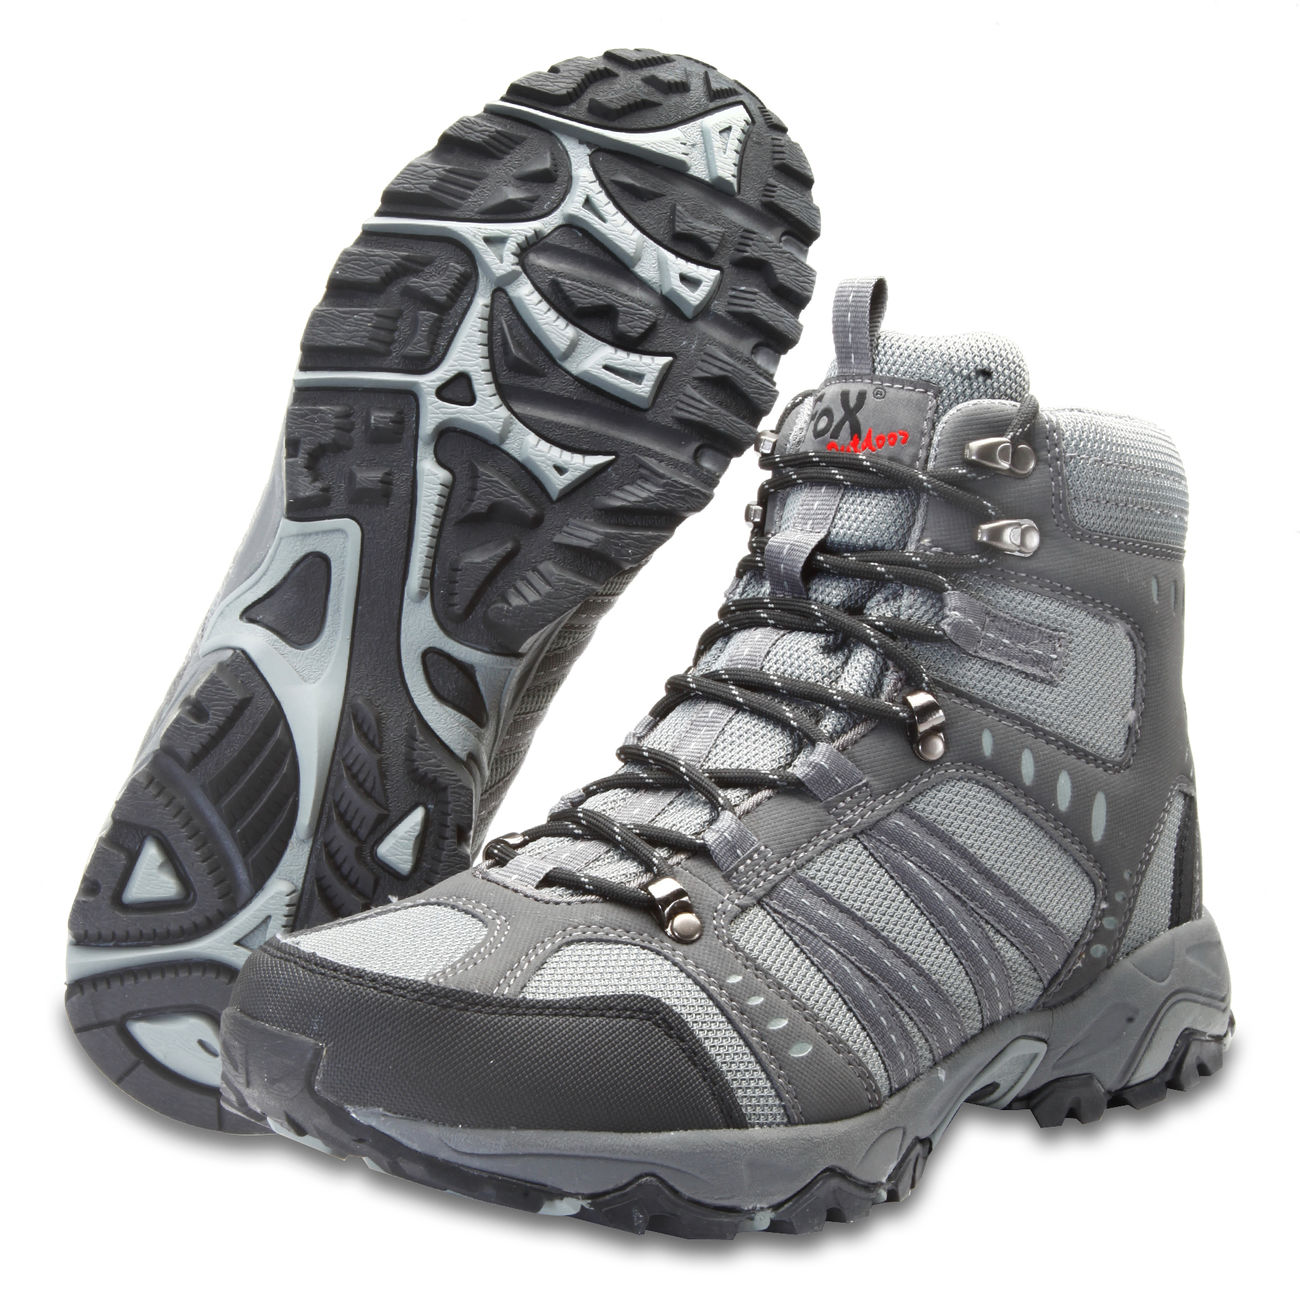 Fox Outdoor Trekkingschuh Mountain High grau 1